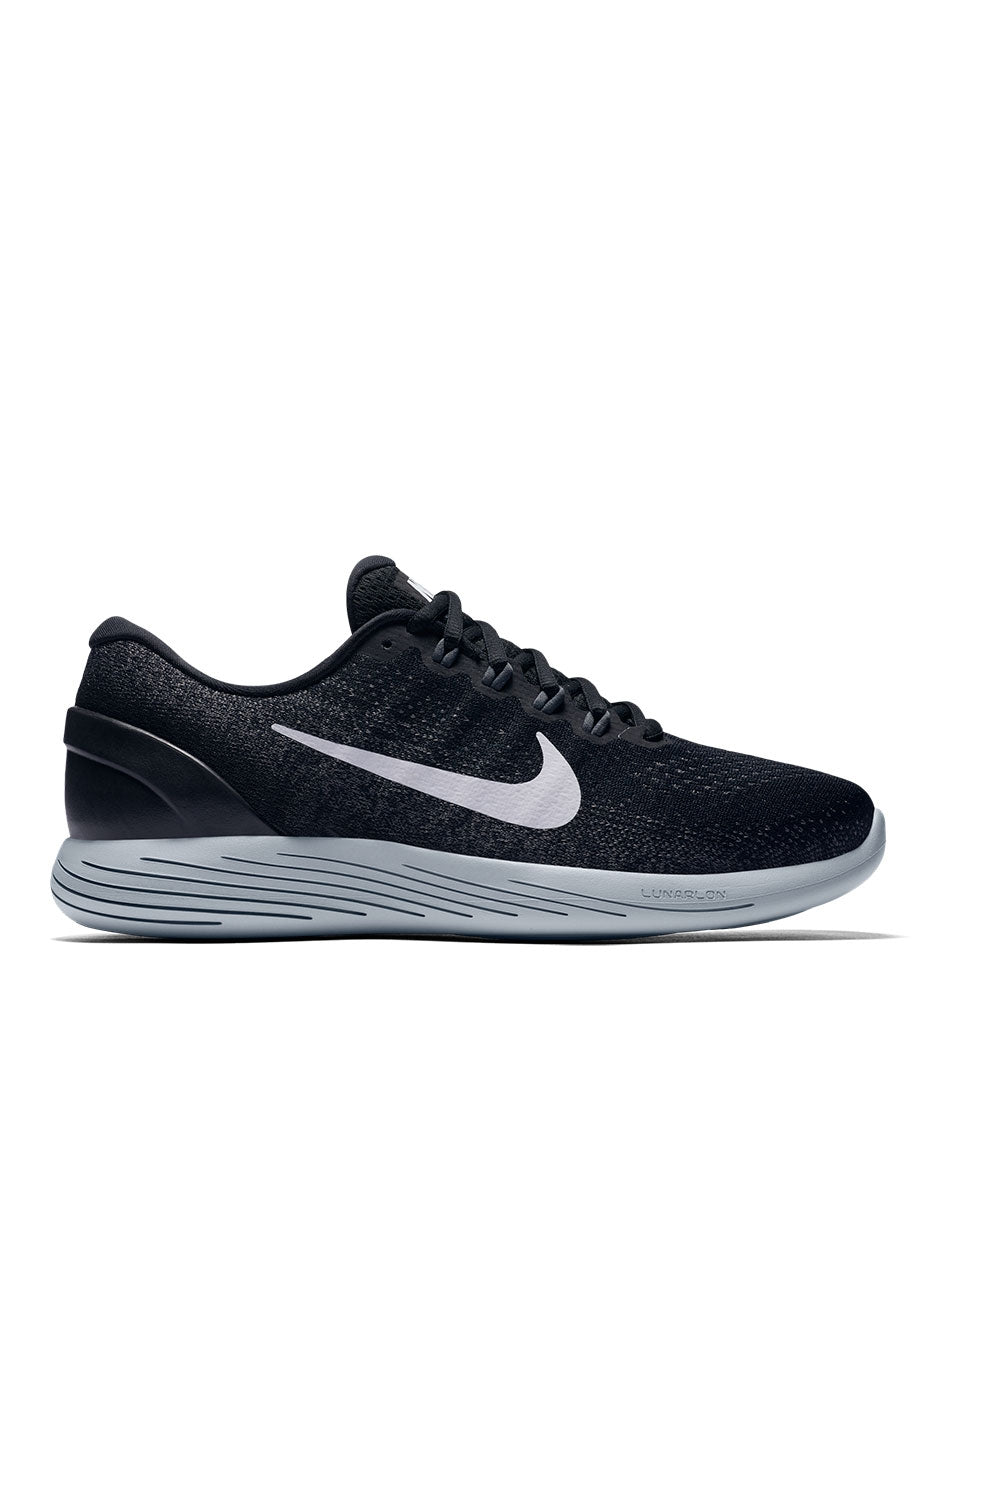 best website 43496 4b1d2 Men's LunarGlide 9